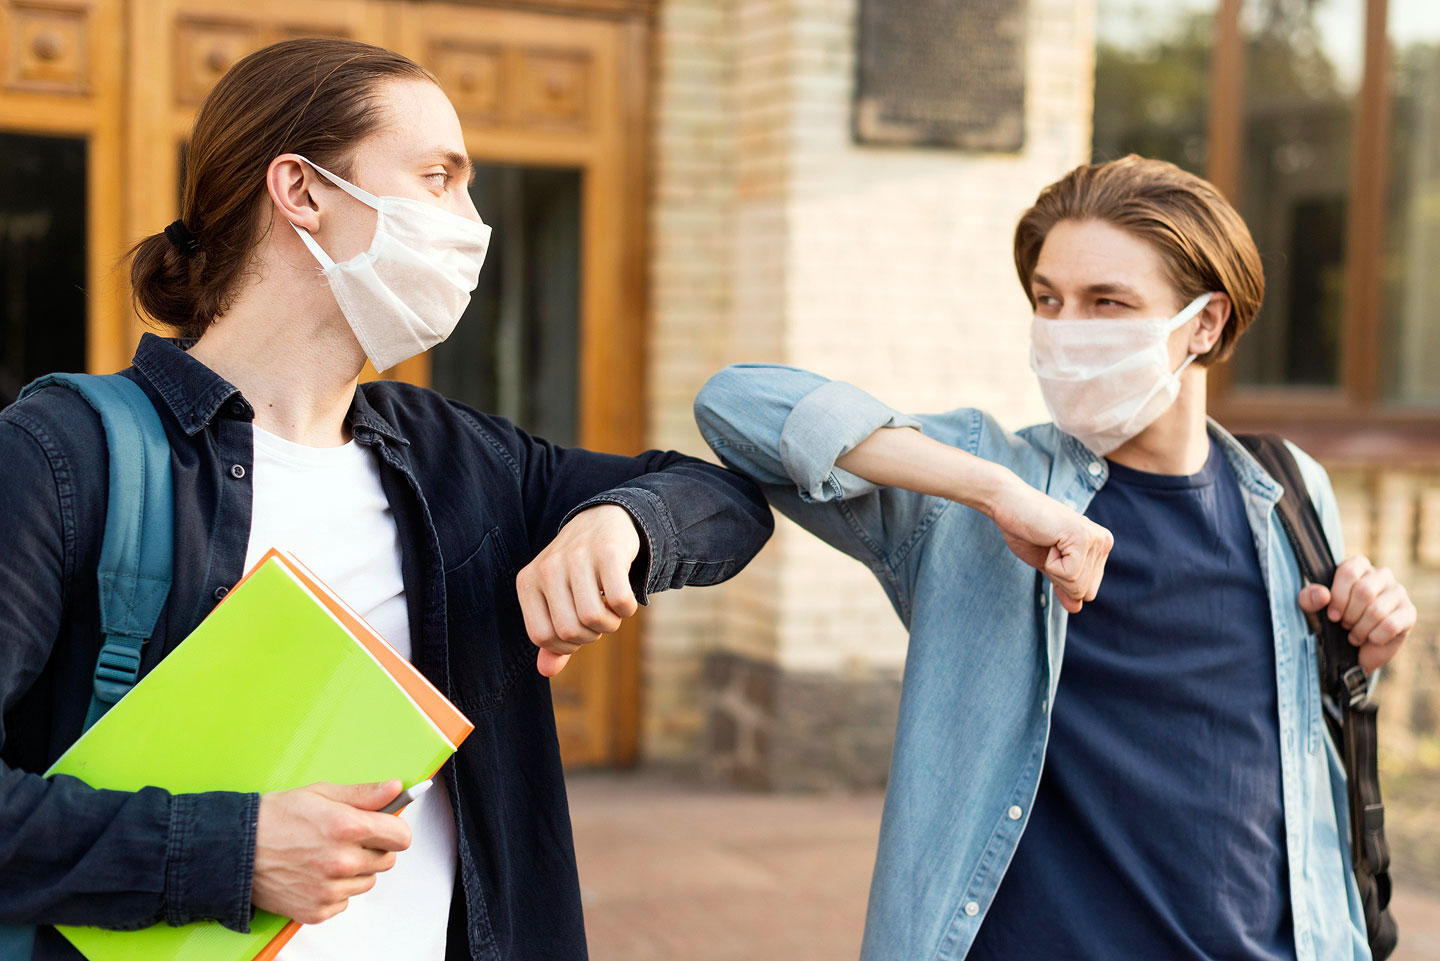 Young students bump elbows while wearing masks